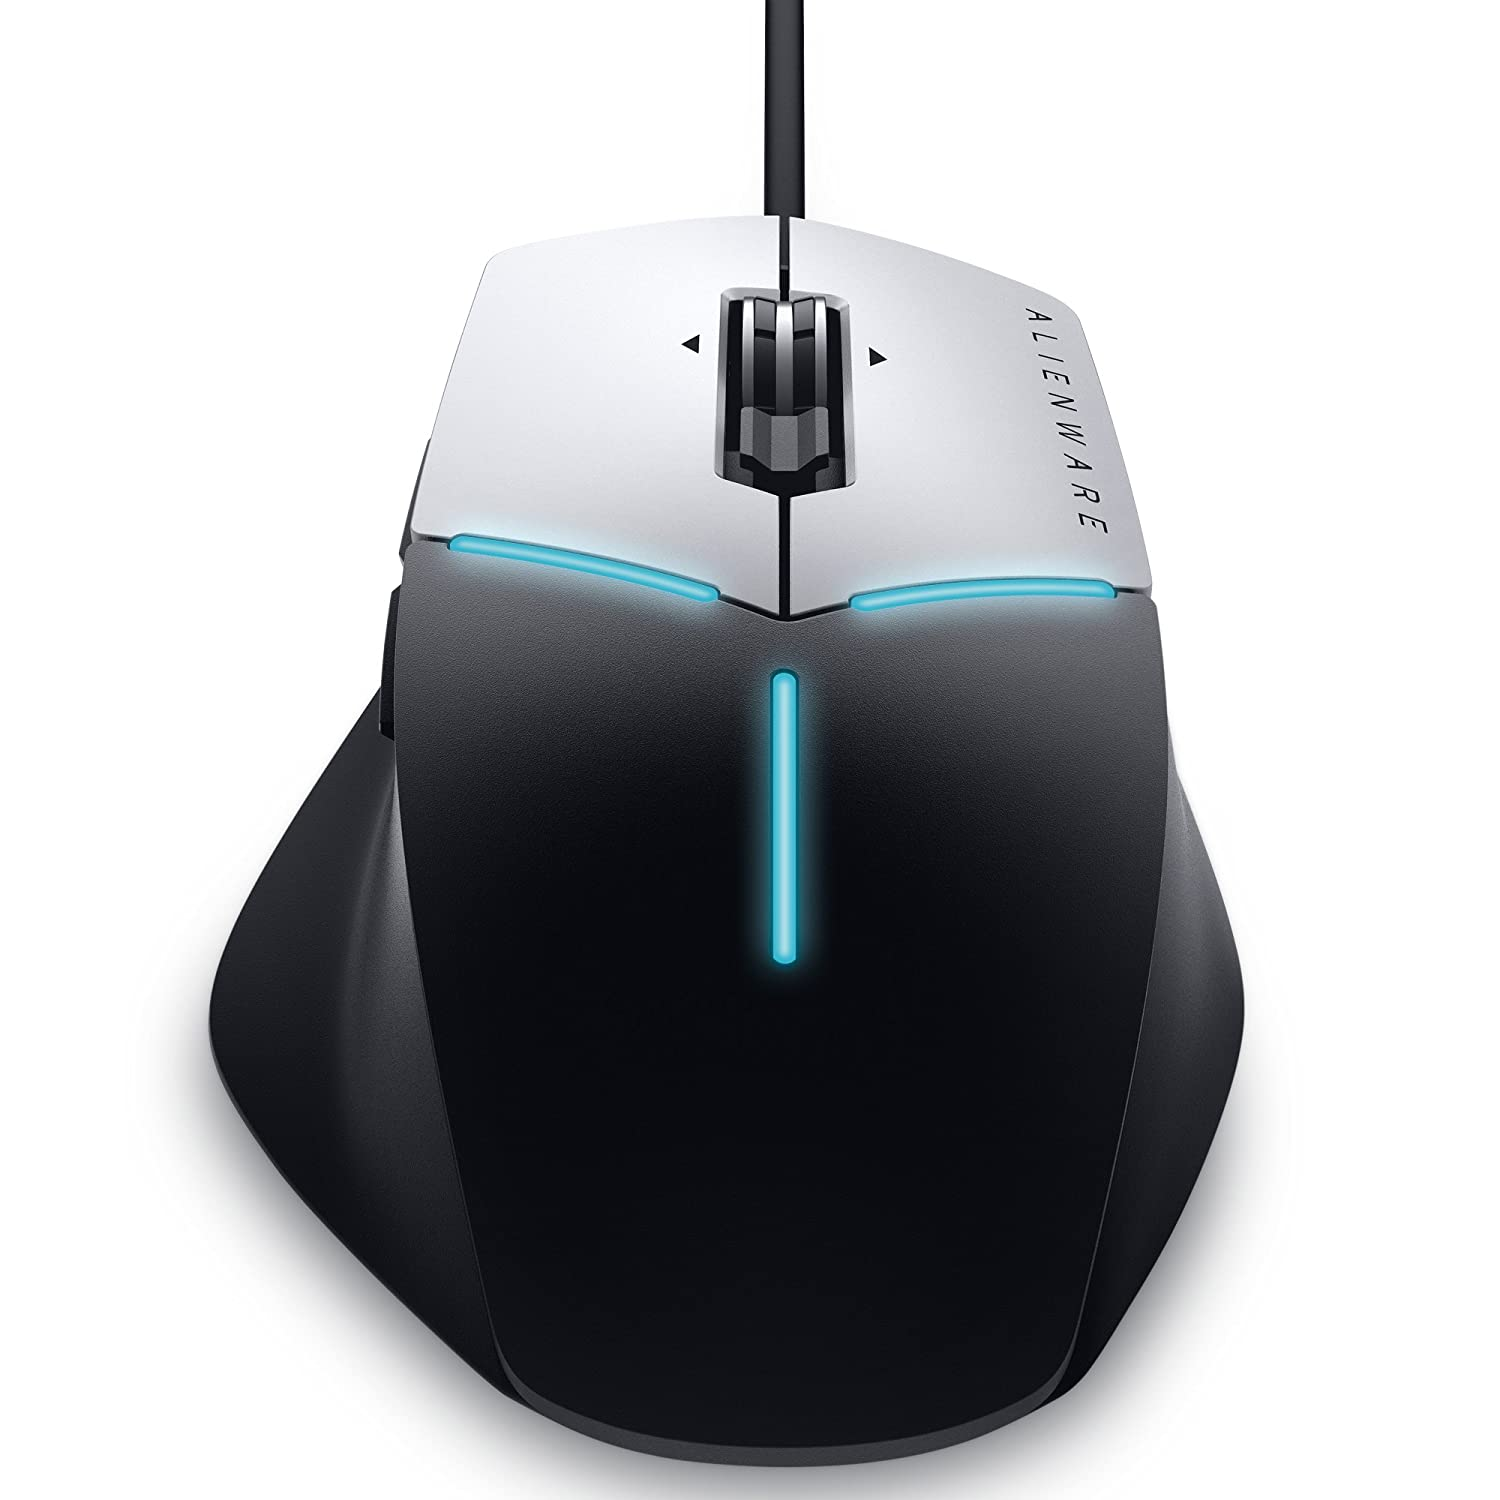 Amazon Alienware Advanced Gaming Mouse AW558 By author Duke Saint Simon puters & Accessories